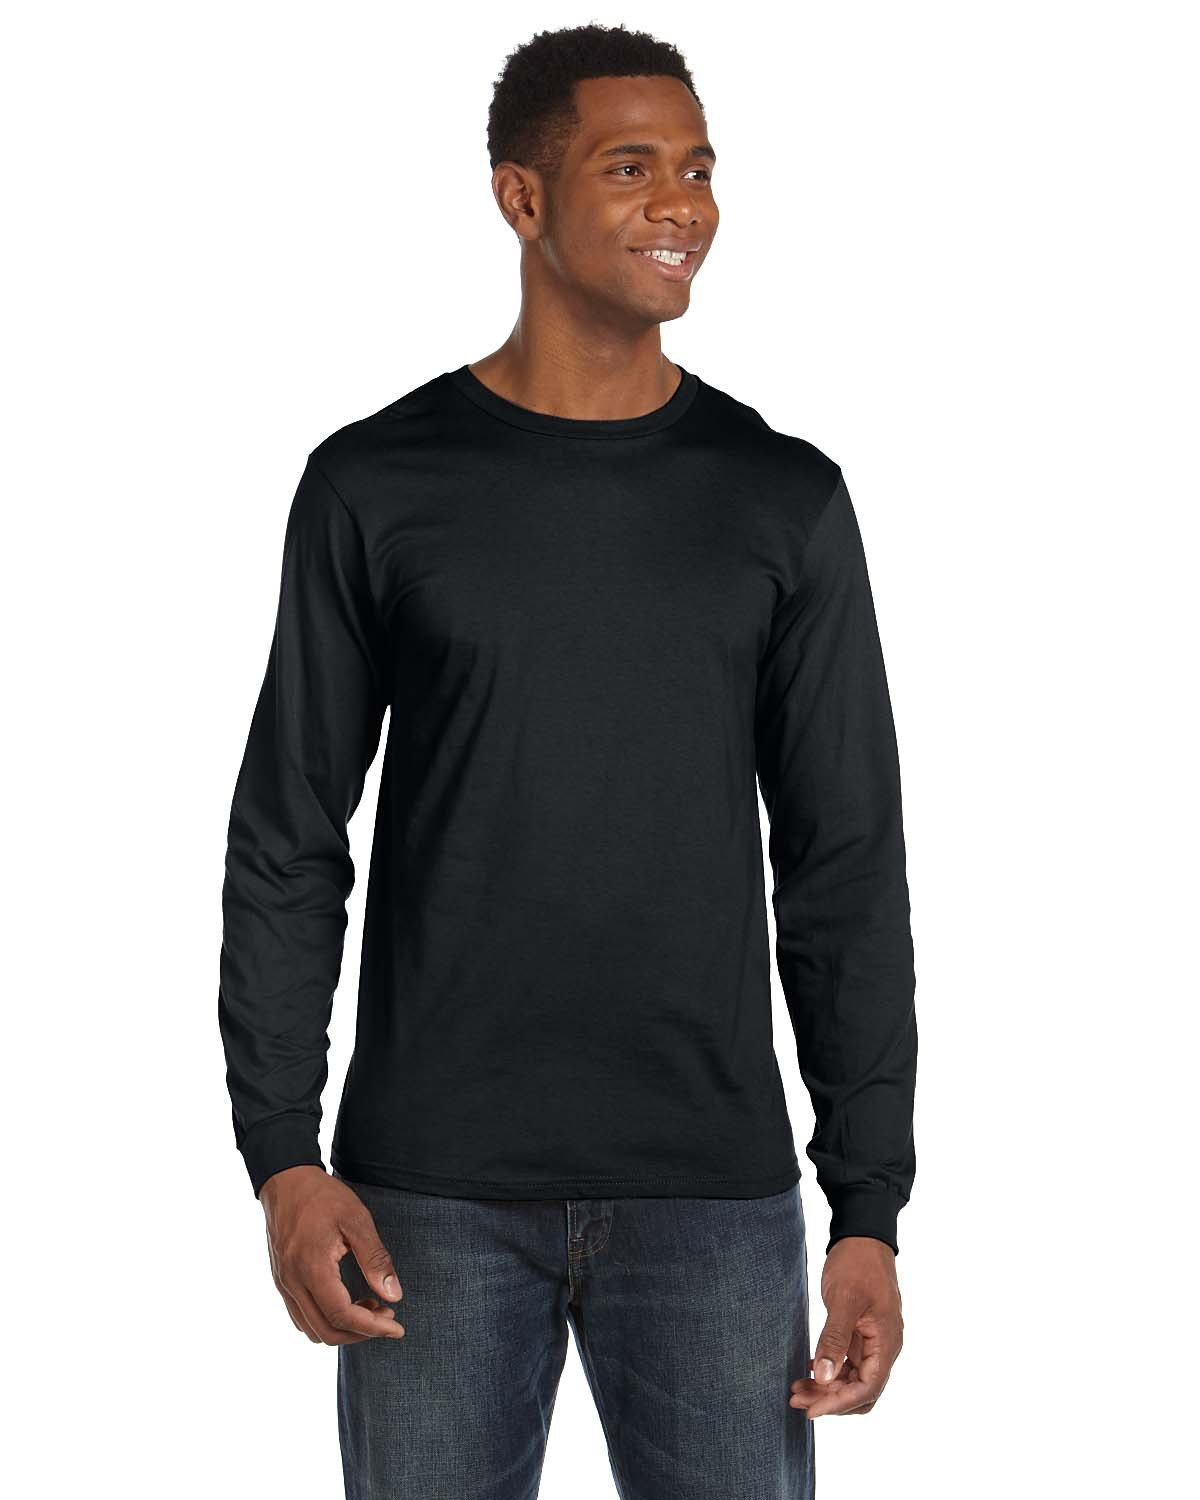 Anvil - 949 - Lightweight Long-Sleeve T-Shirt